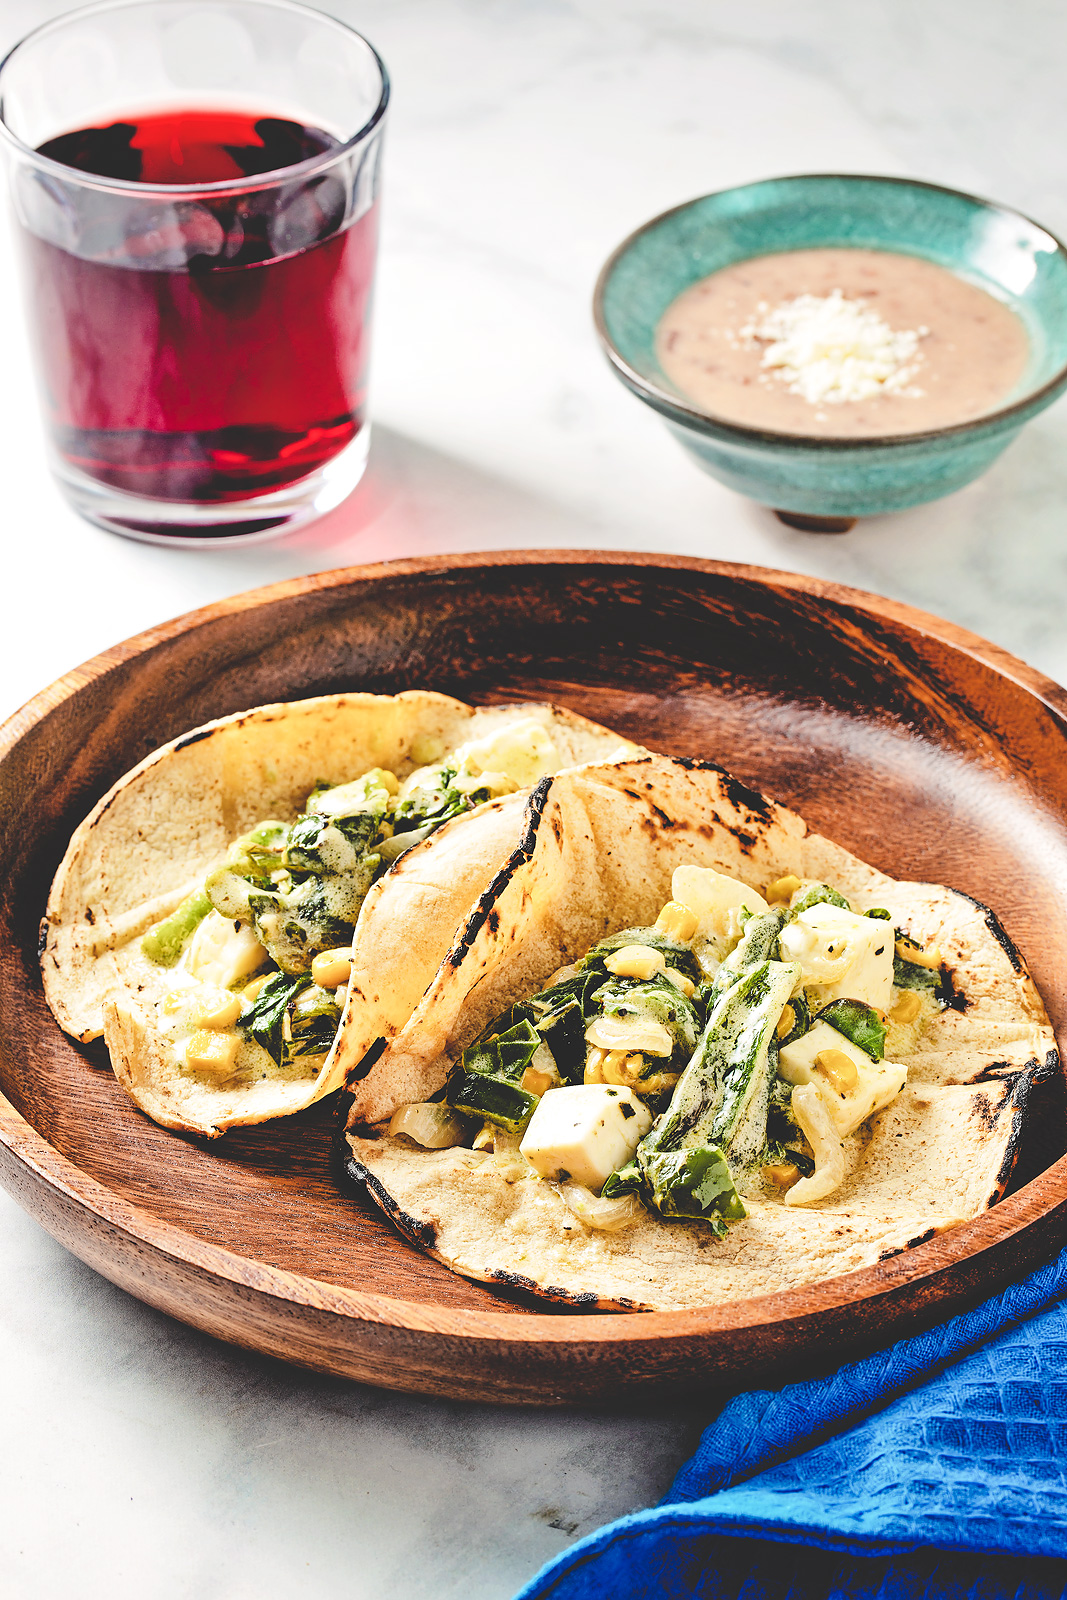 Rajas con crema tacos with wine and refried beans.